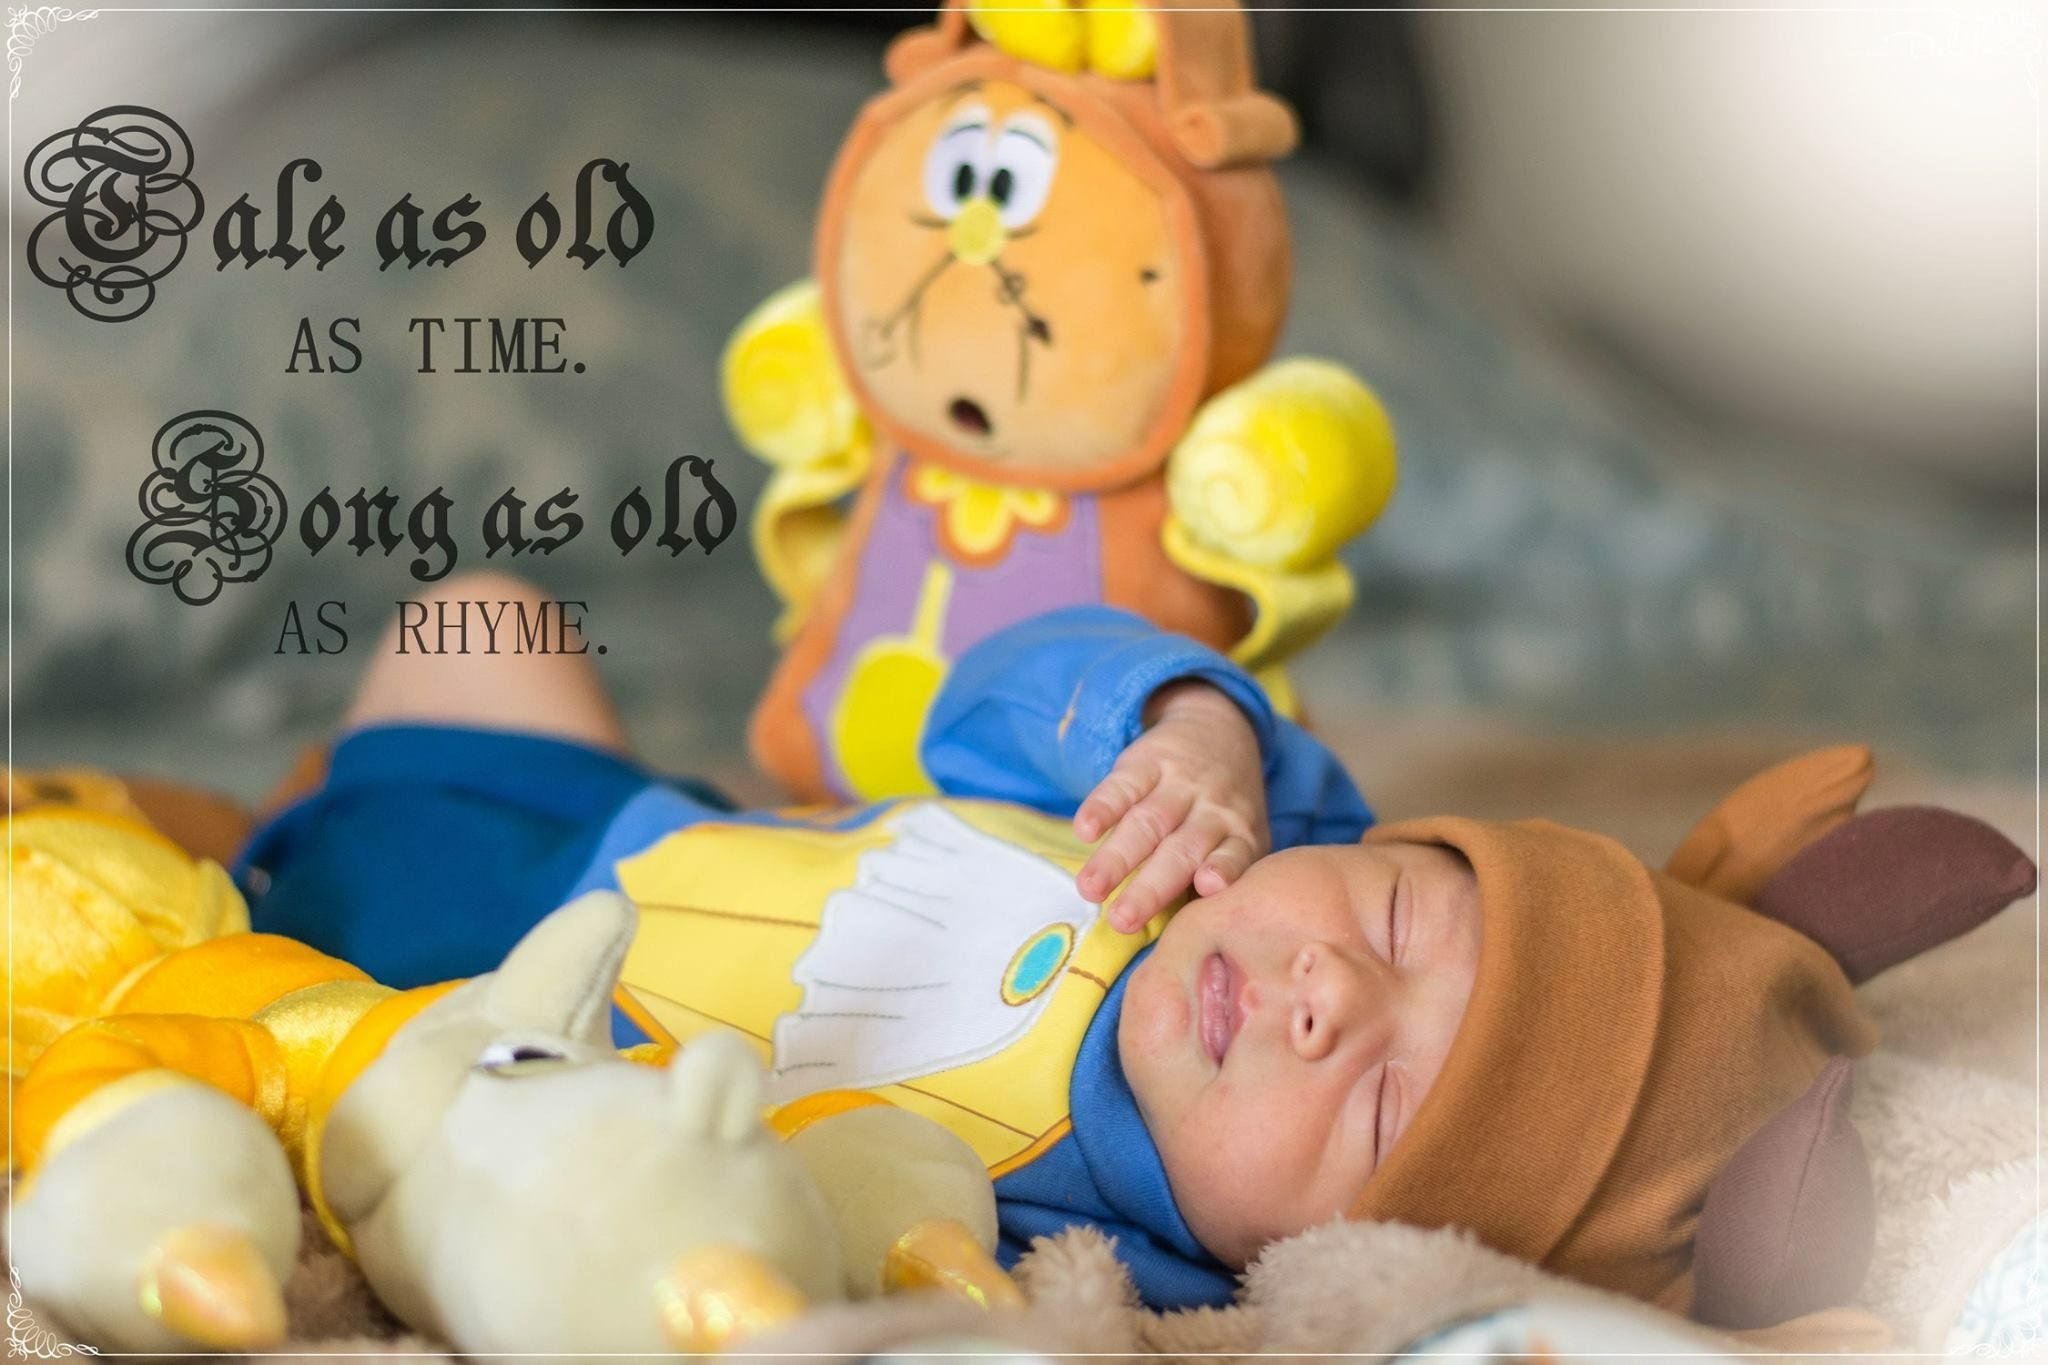 Beauty and the beast themed photoshoot disney baby newborn photography costume 2weeks